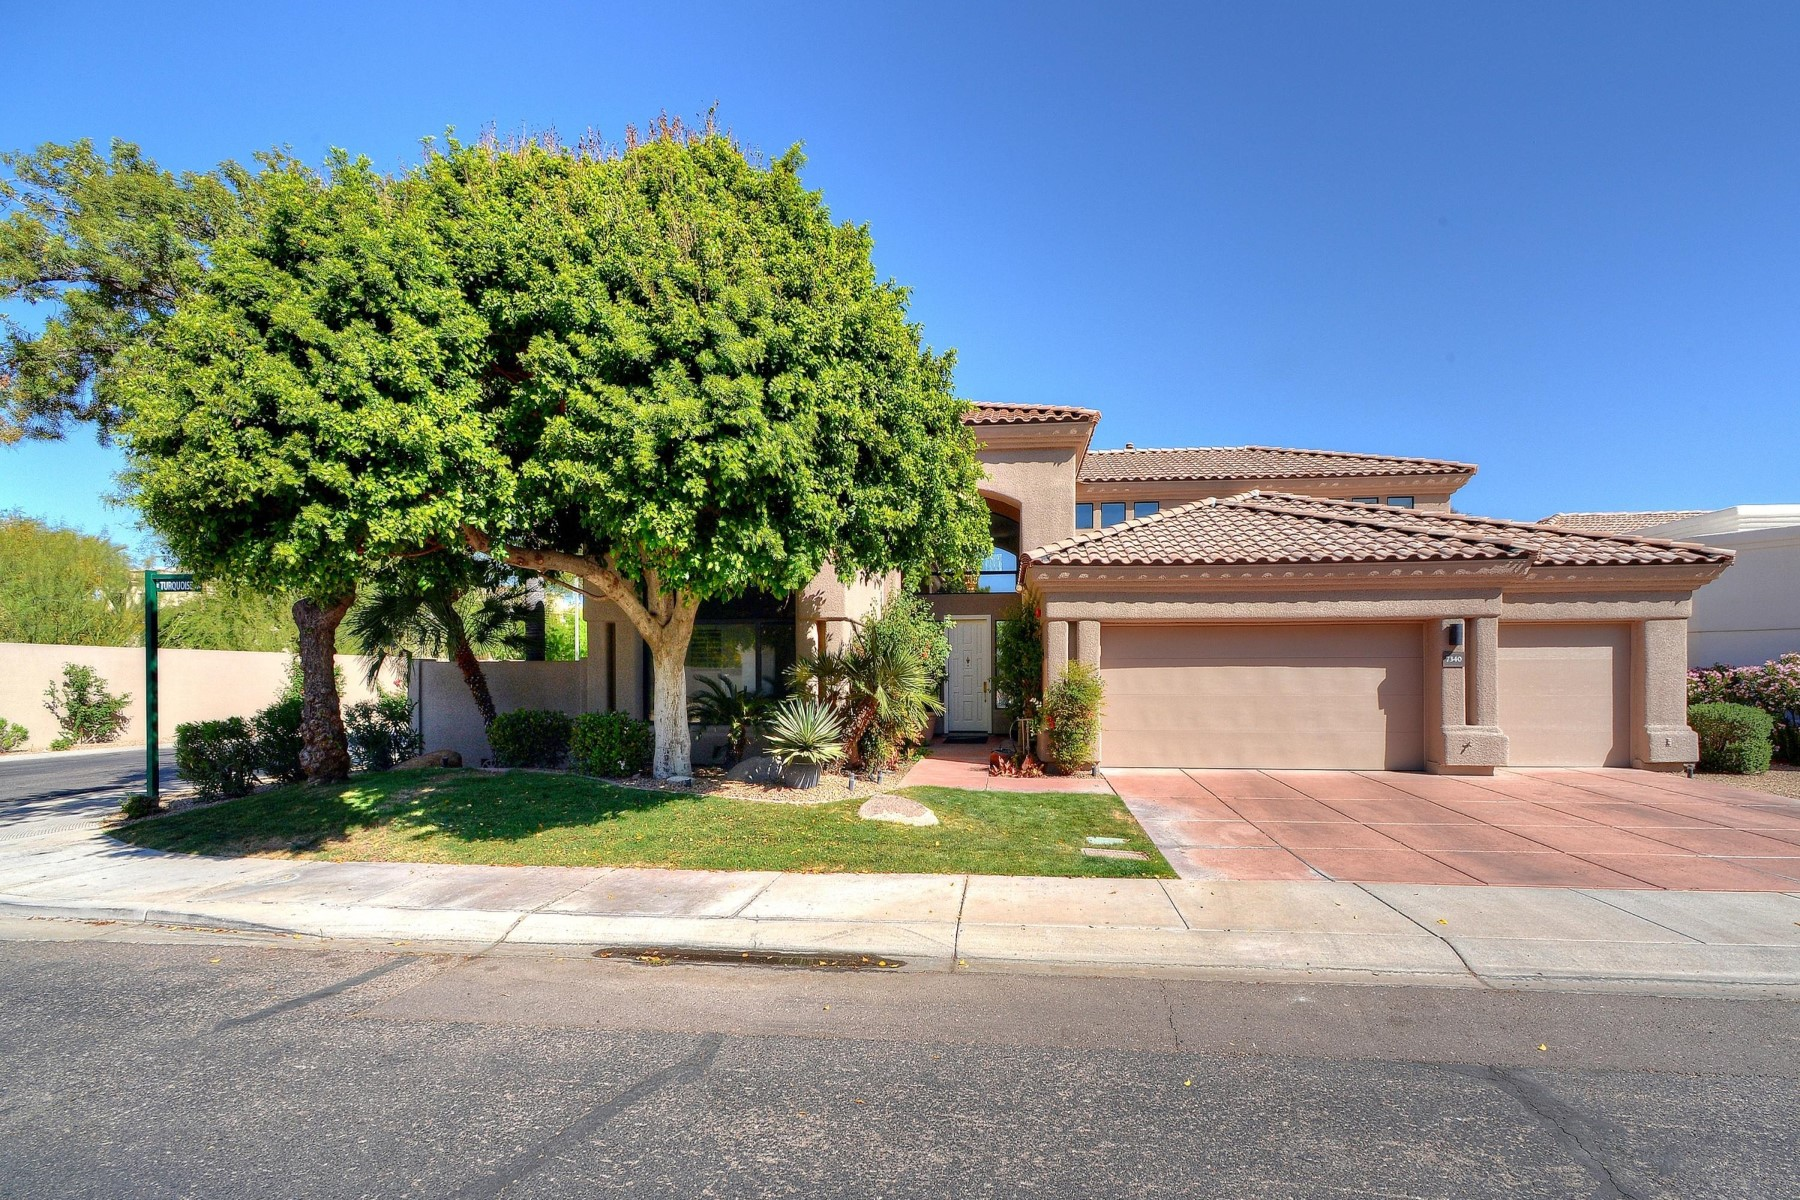 Single Family Home for Sale at Lovely home in the gated community of Monterey at Mountain View 7340 E Turquoise Avenue Scottsdale, Arizona, 85258 United States